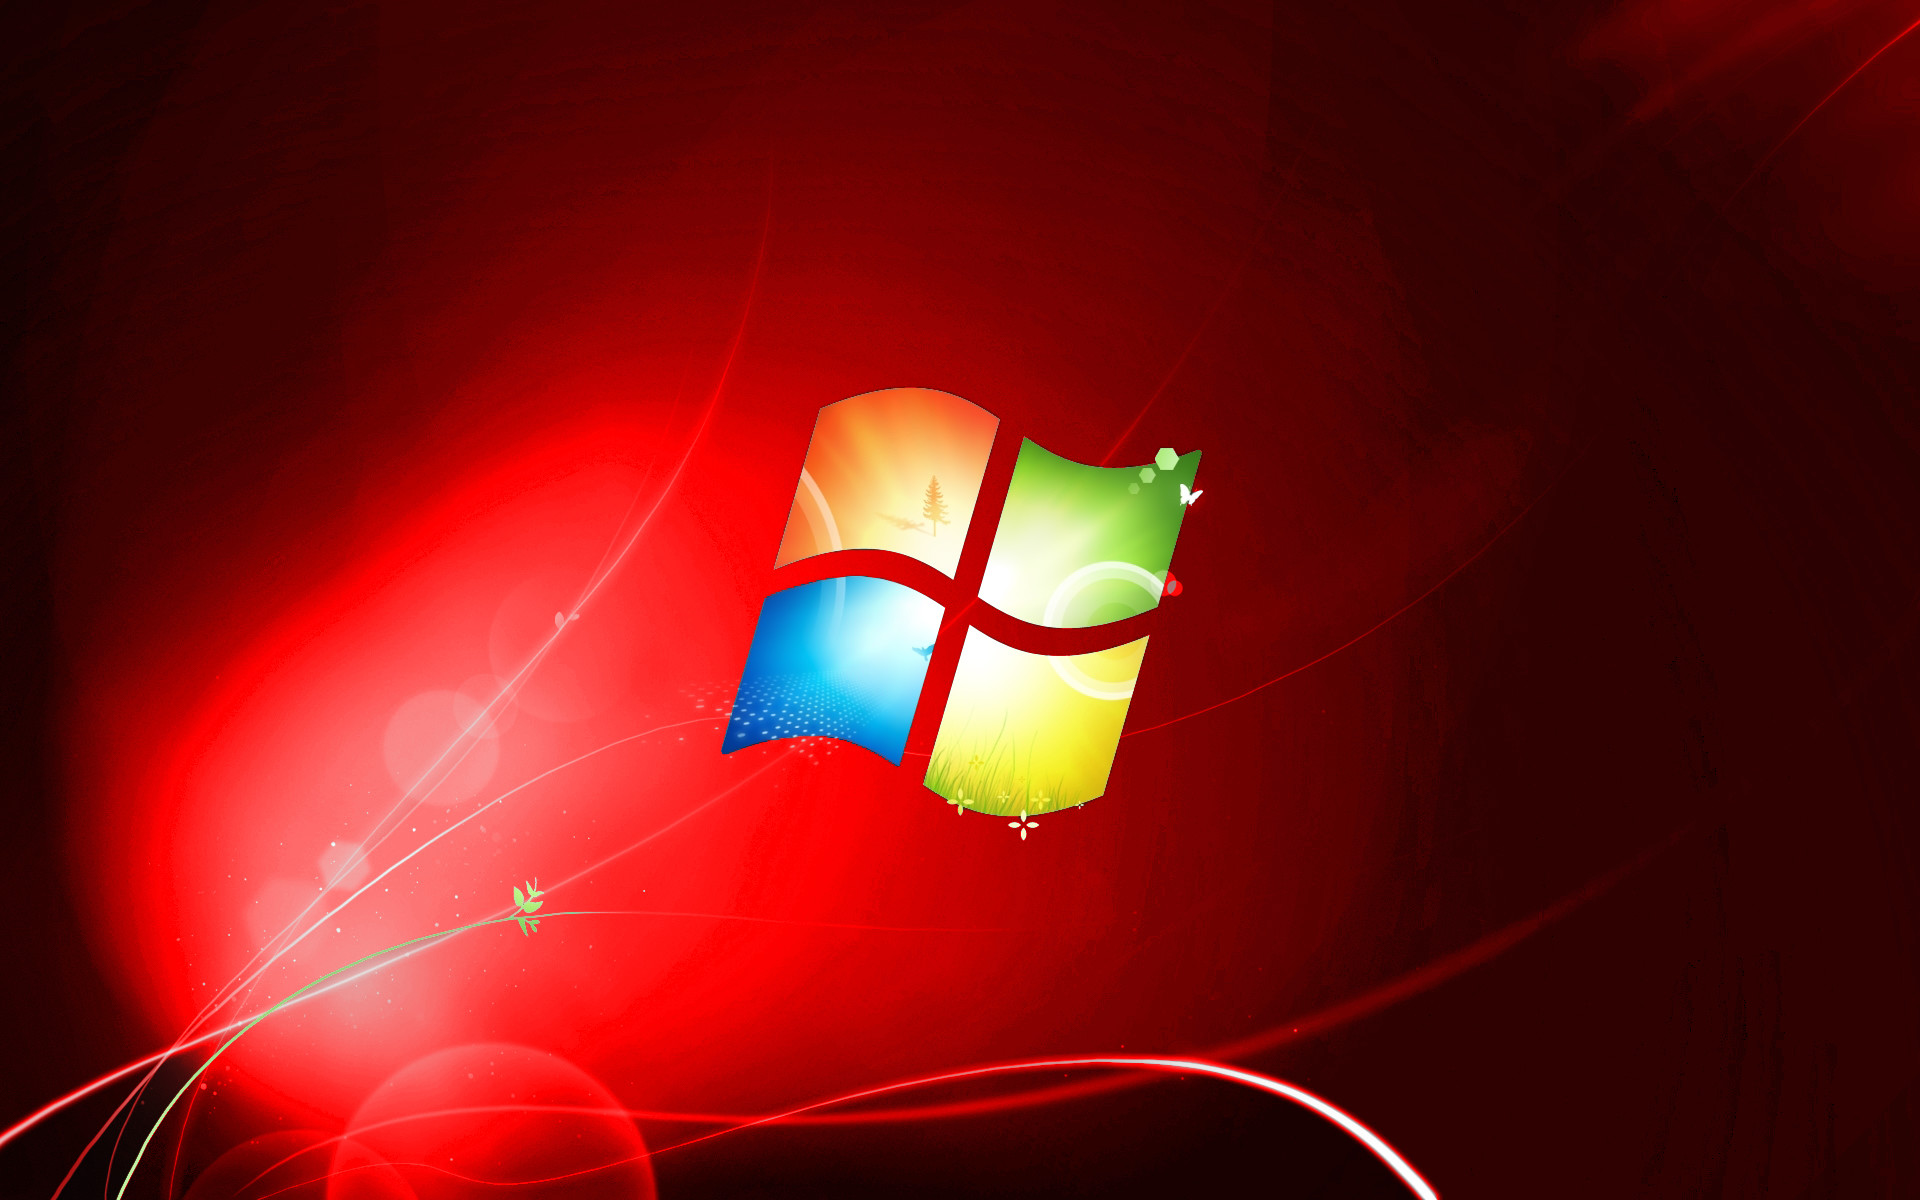 red windows 10 wallpaper hd 71 images